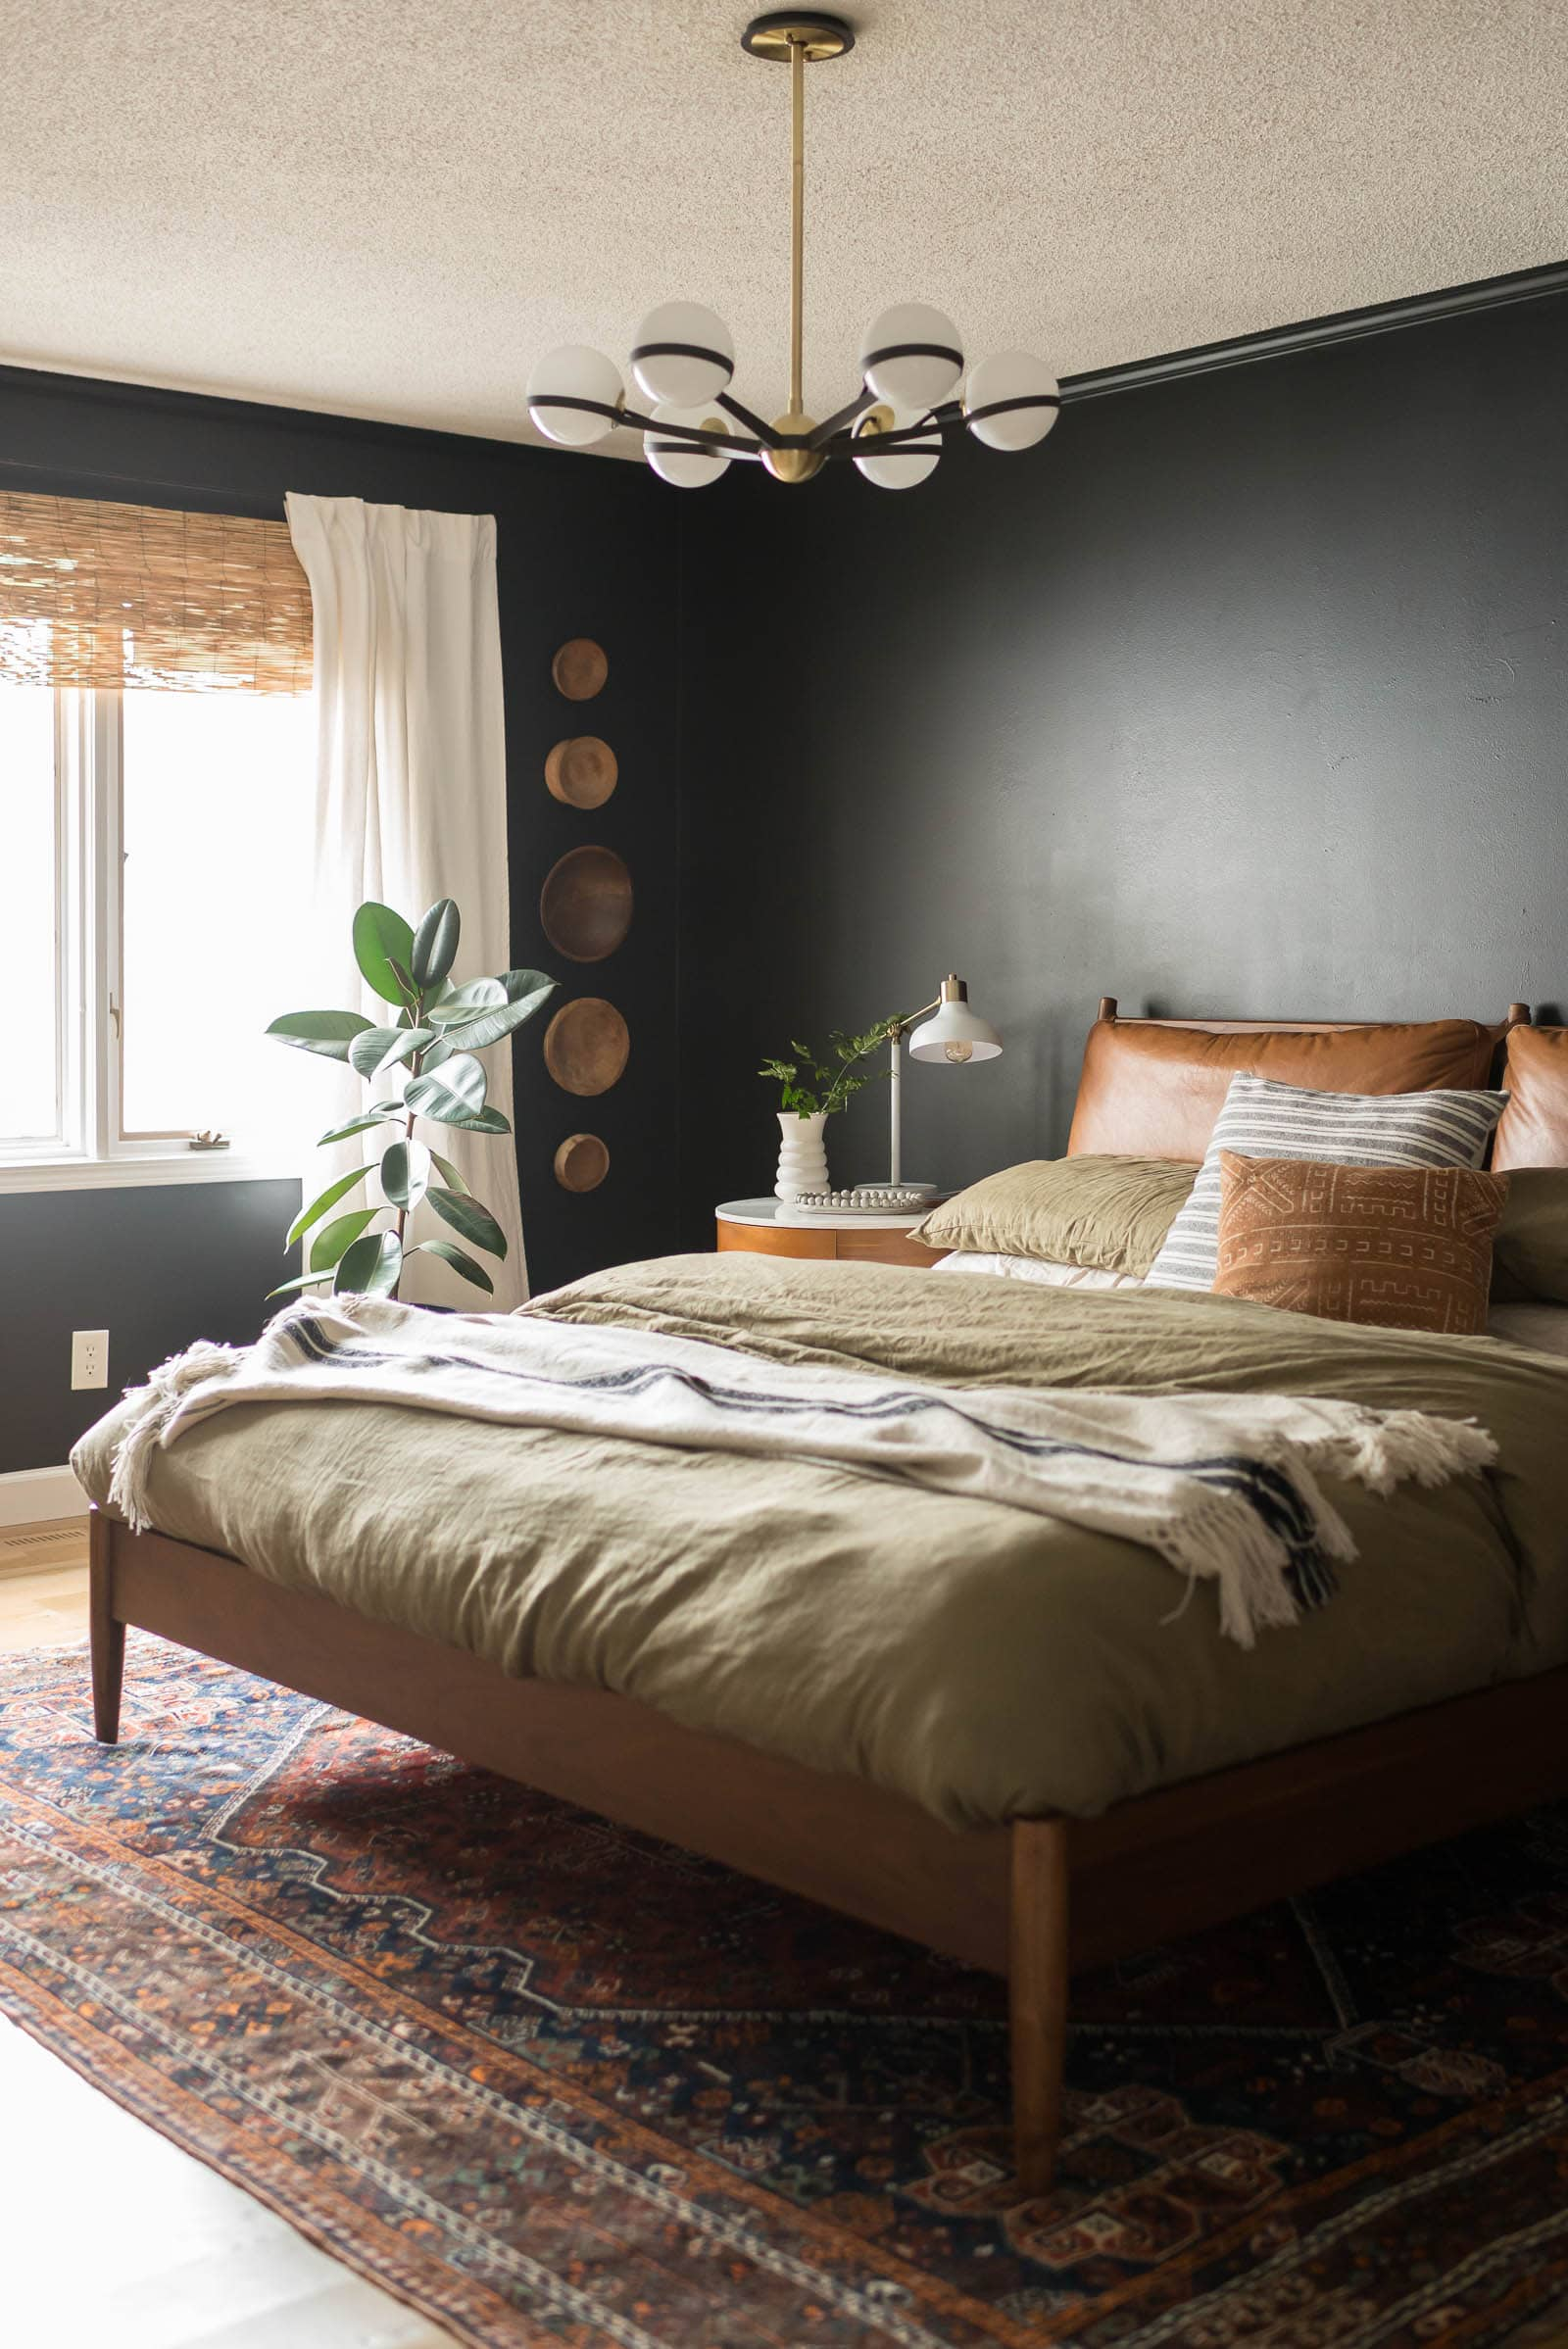 Midcentury Modern bedroom with black paint